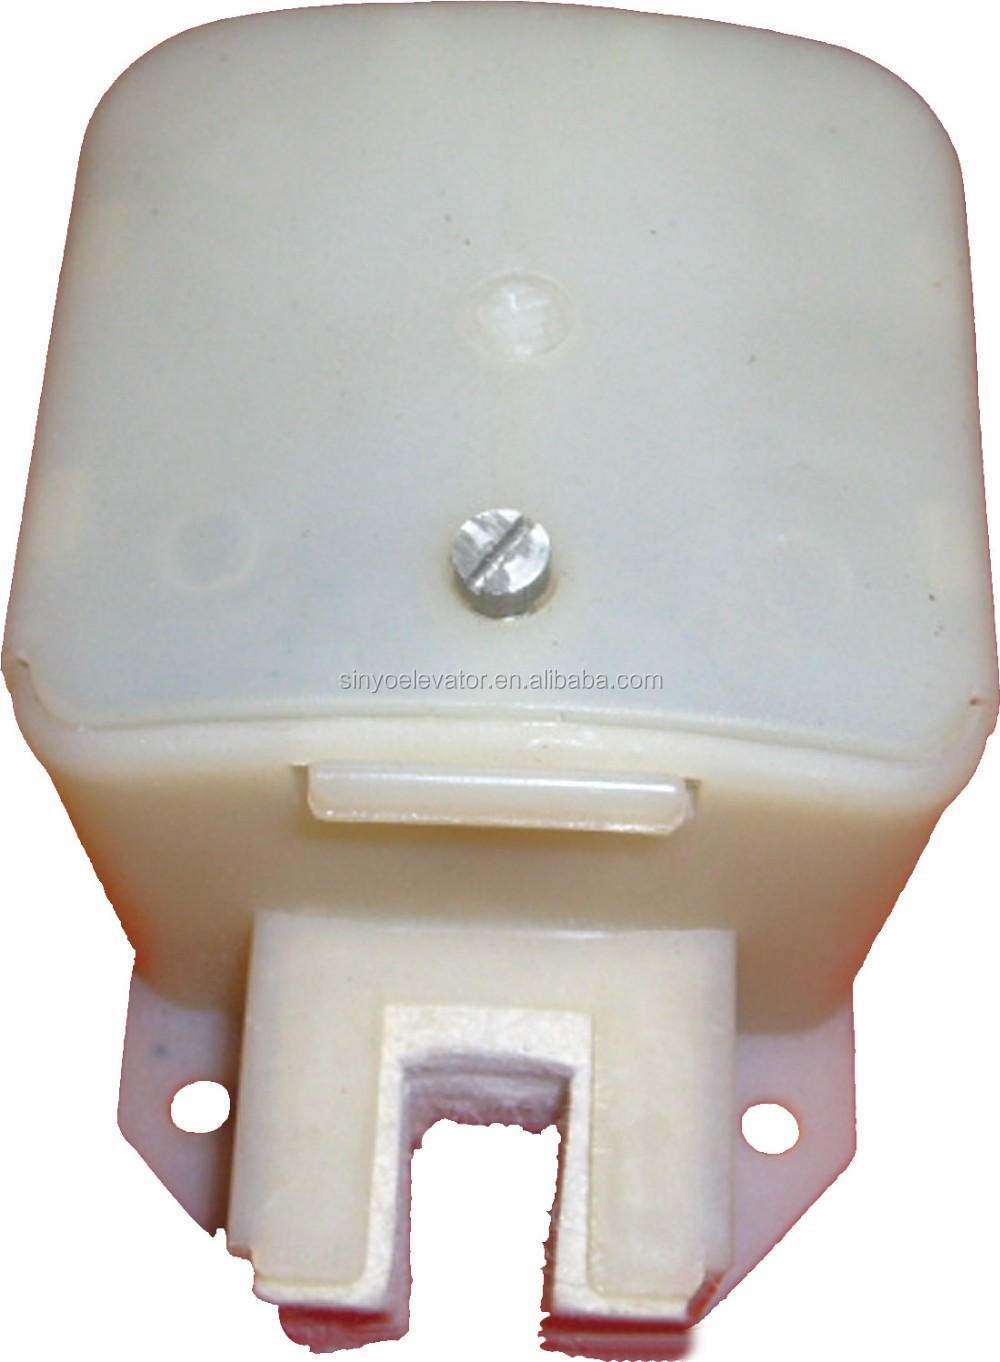 Oil Box Round For Elevator XAA349C2